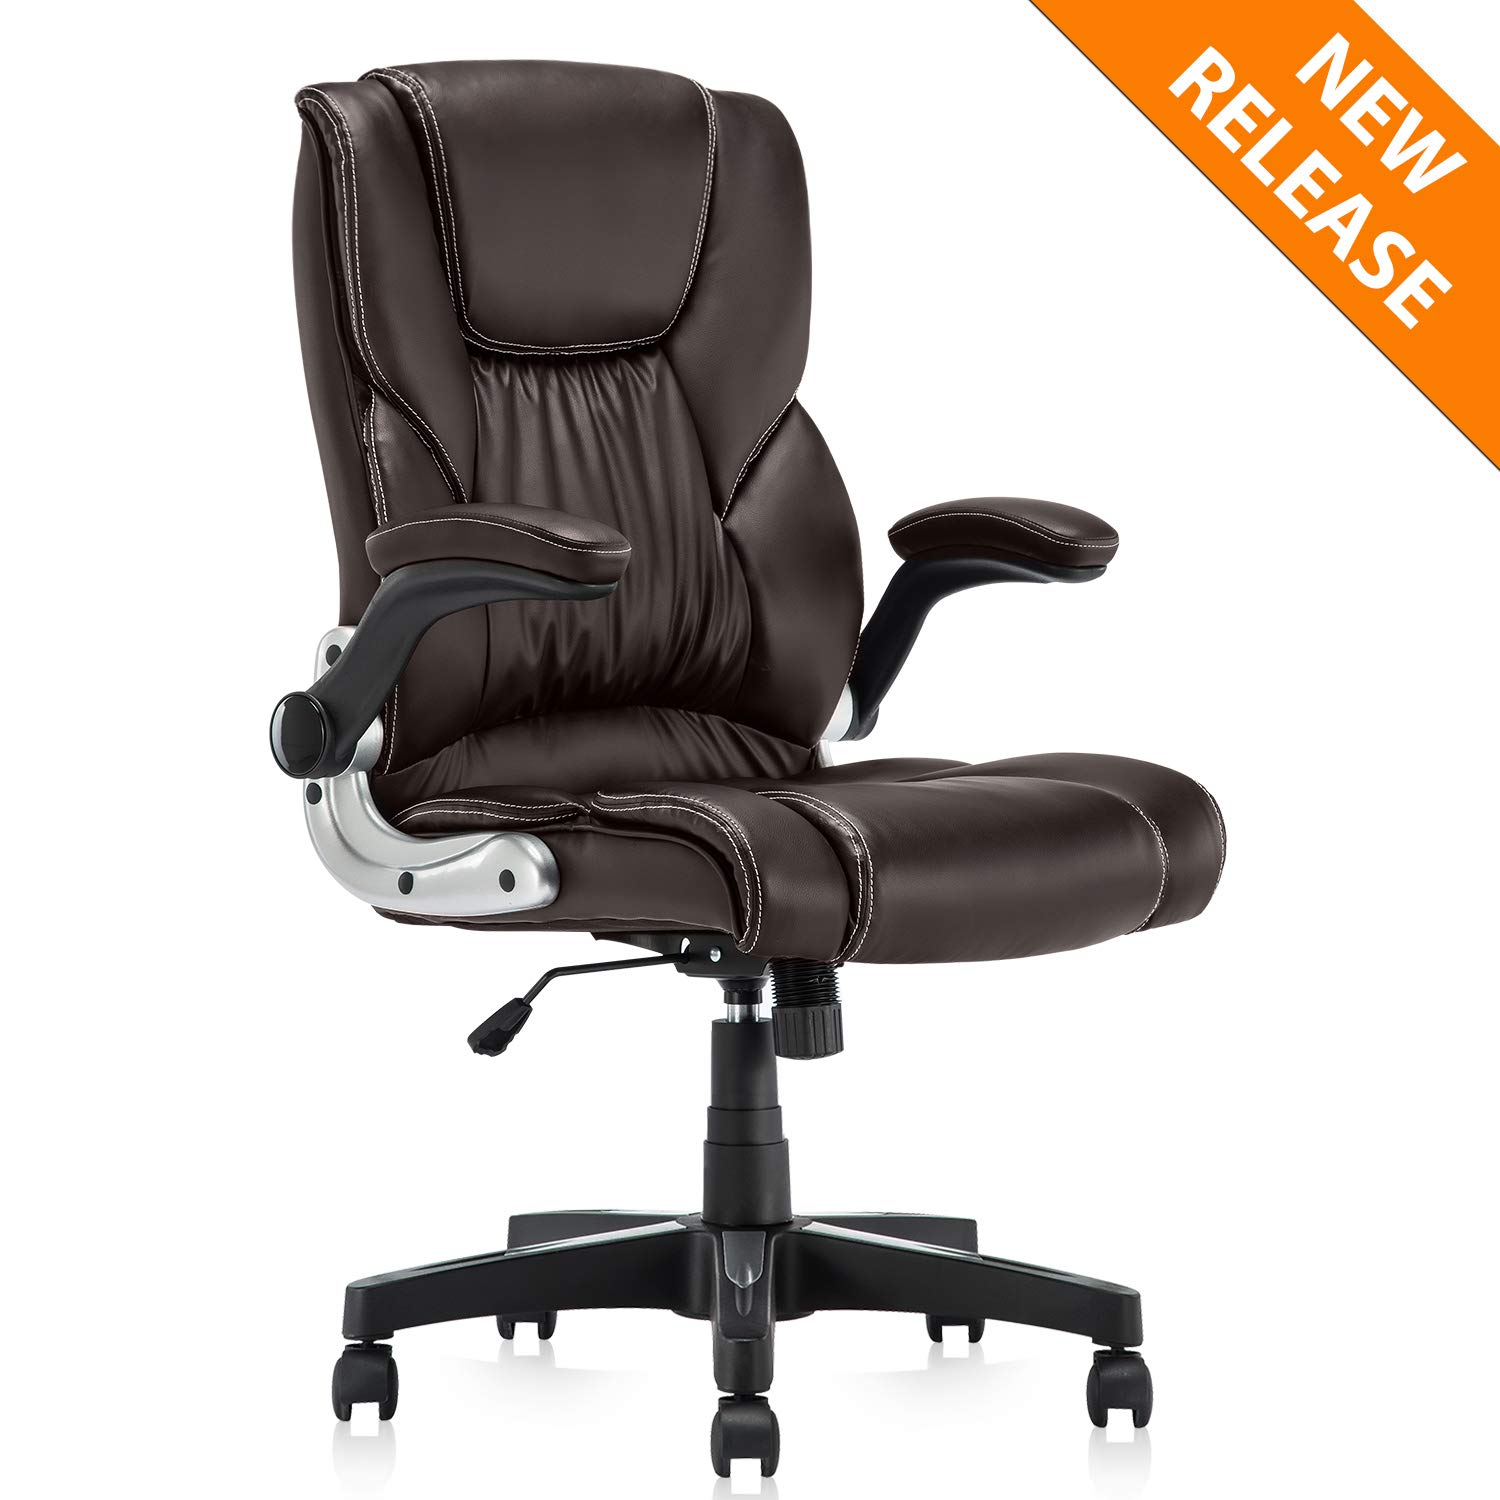 Groovy Yamasoro Ergonomic Office Chair With Flip Up Arms And Wheels Executive Office Desk Chairs Leather Black Computer Chairs Download Free Architecture Designs Grimeyleaguecom